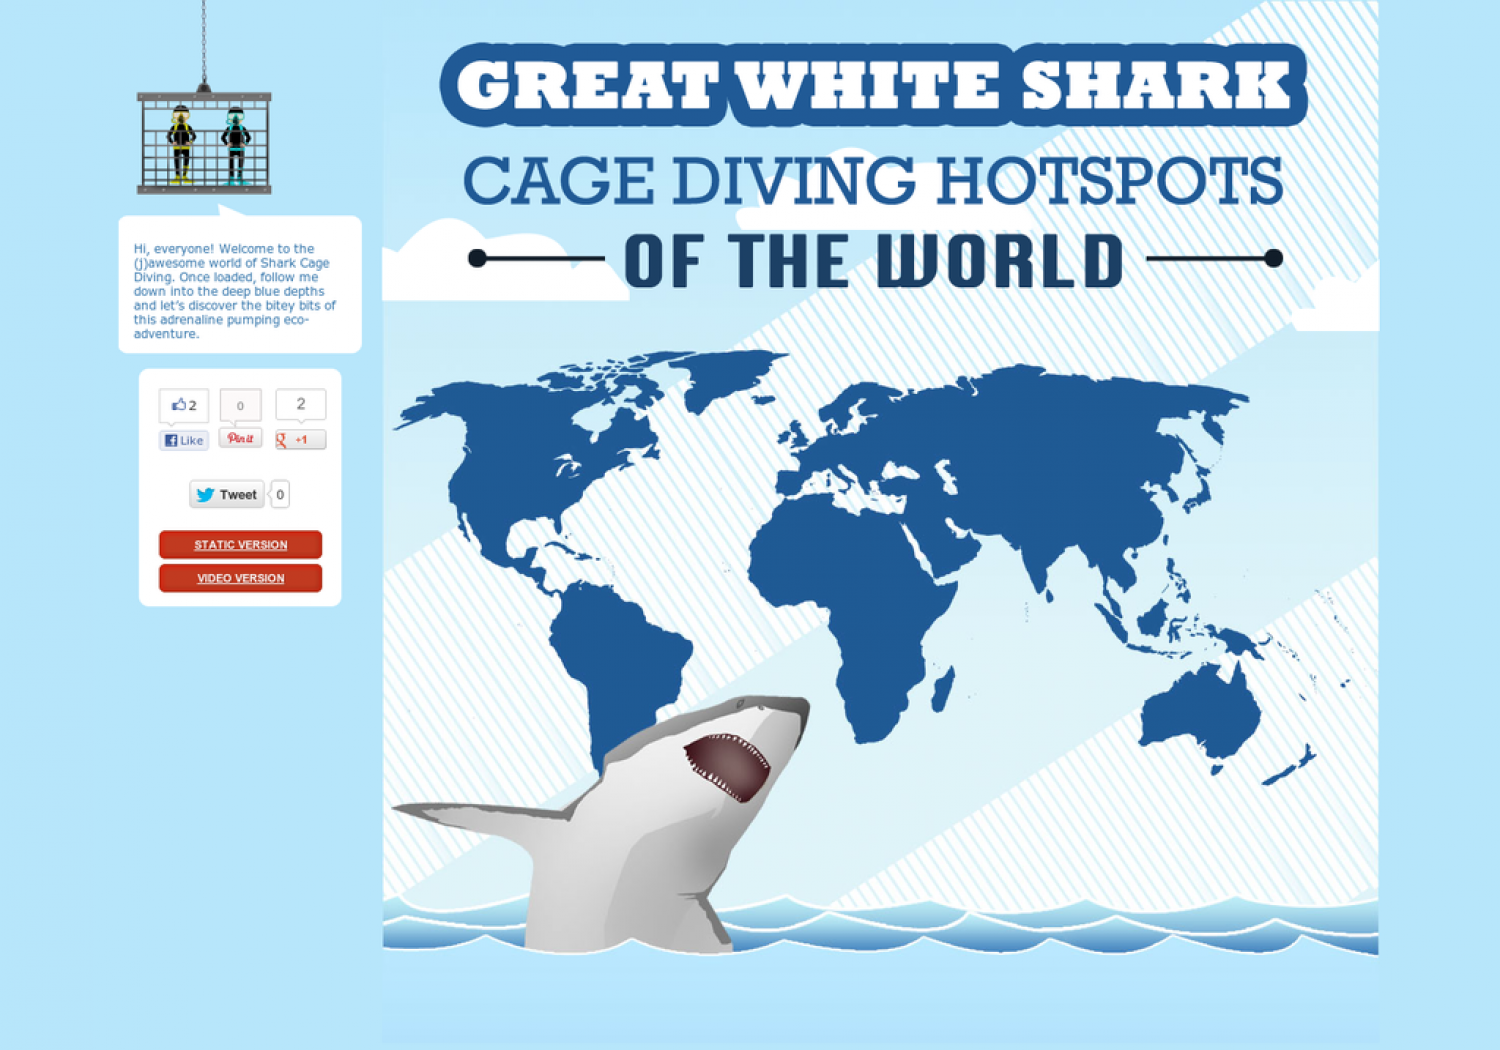 Great White Shark Cage Diving Hotspots of the World [INTERACTIVE] Infographic